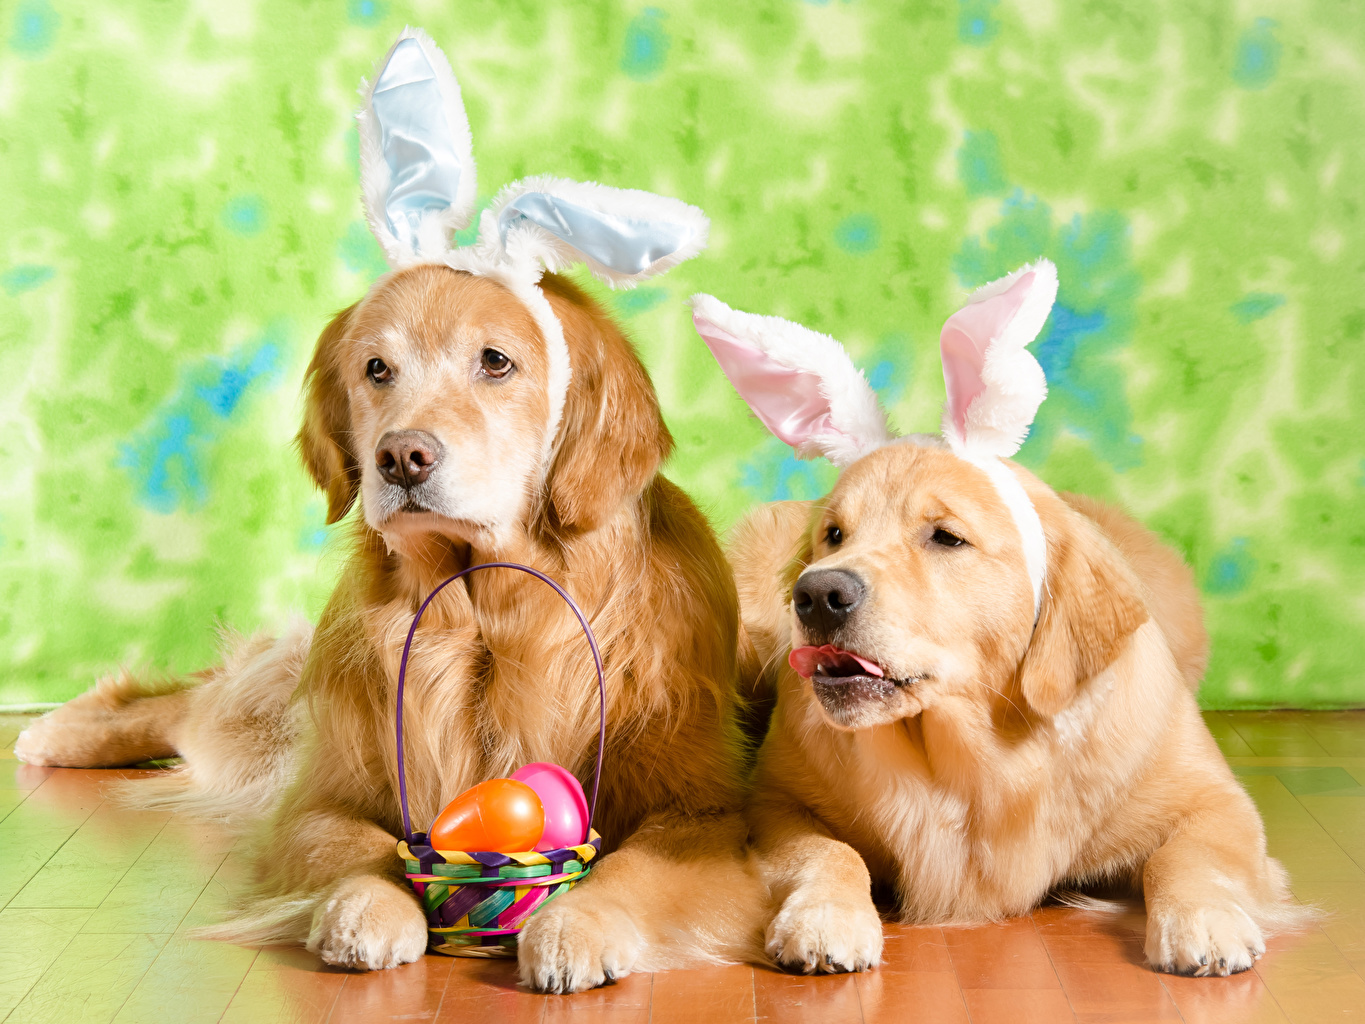 Wallpaper Easter Golden Retriever Dogs Rabbit ears egg 2 Wicker basket animal dog Eggs Two Animals